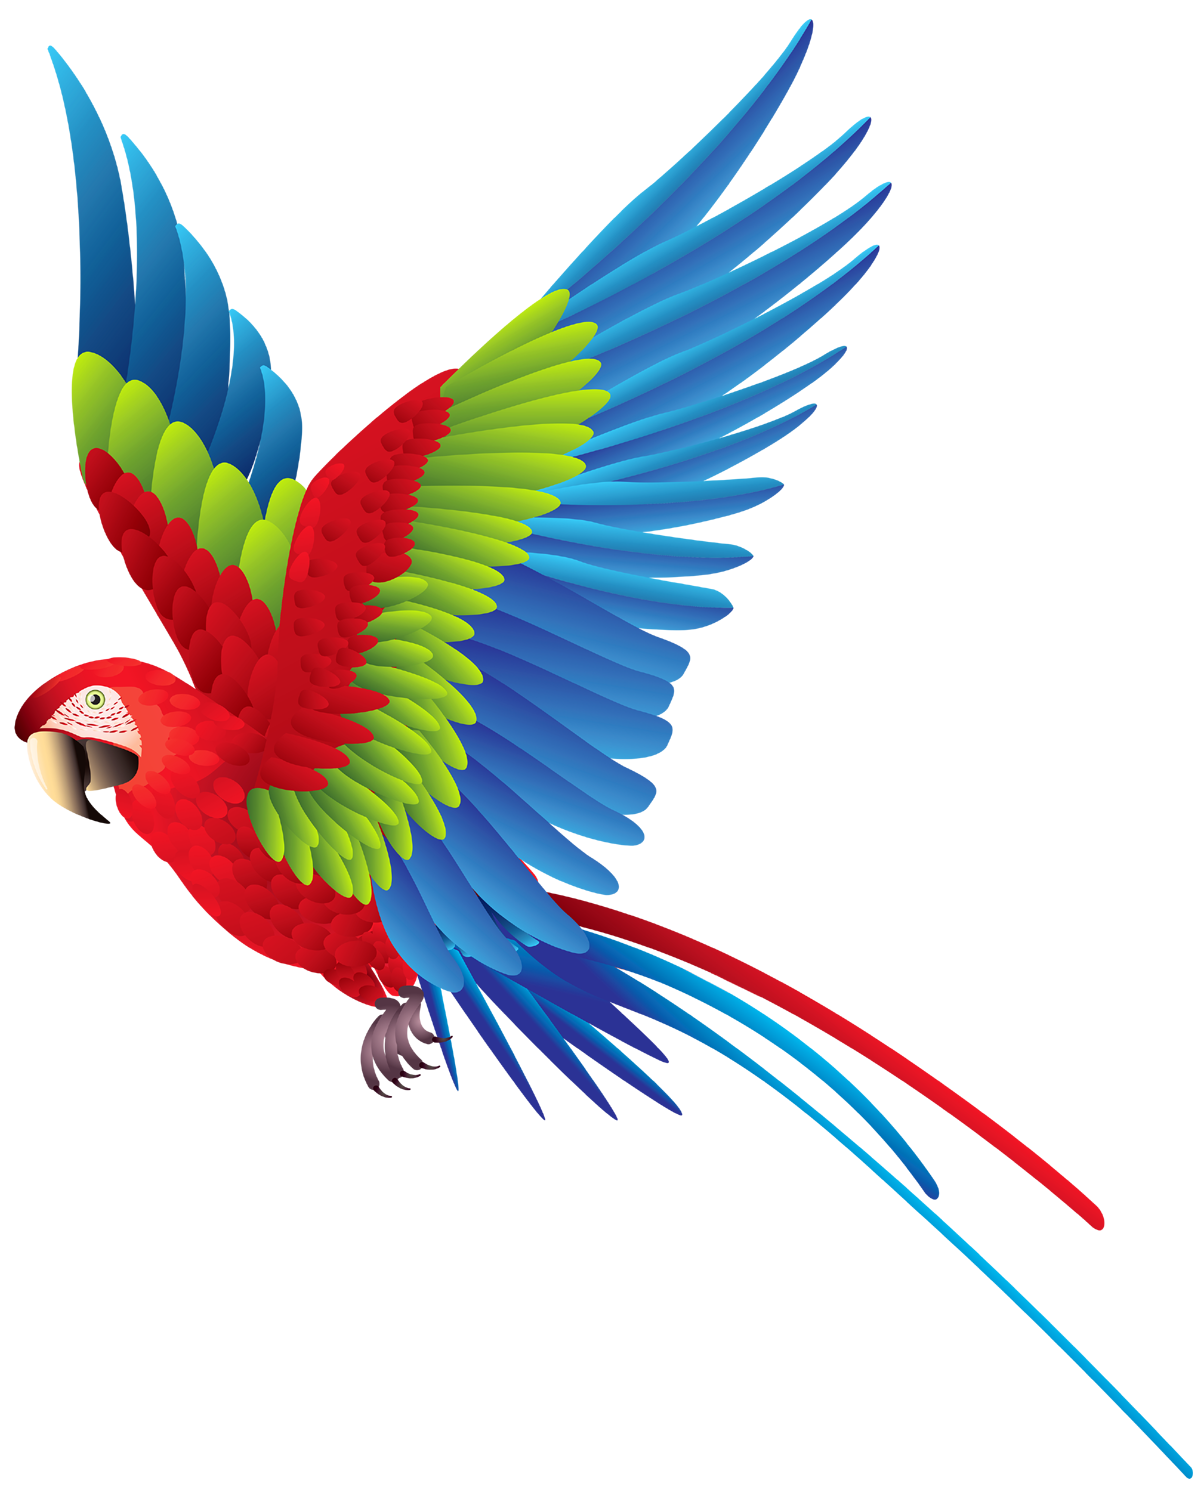 Sun conure clipart png clip art transparent download Parrot PNG images and Clipart free download clip art transparent download